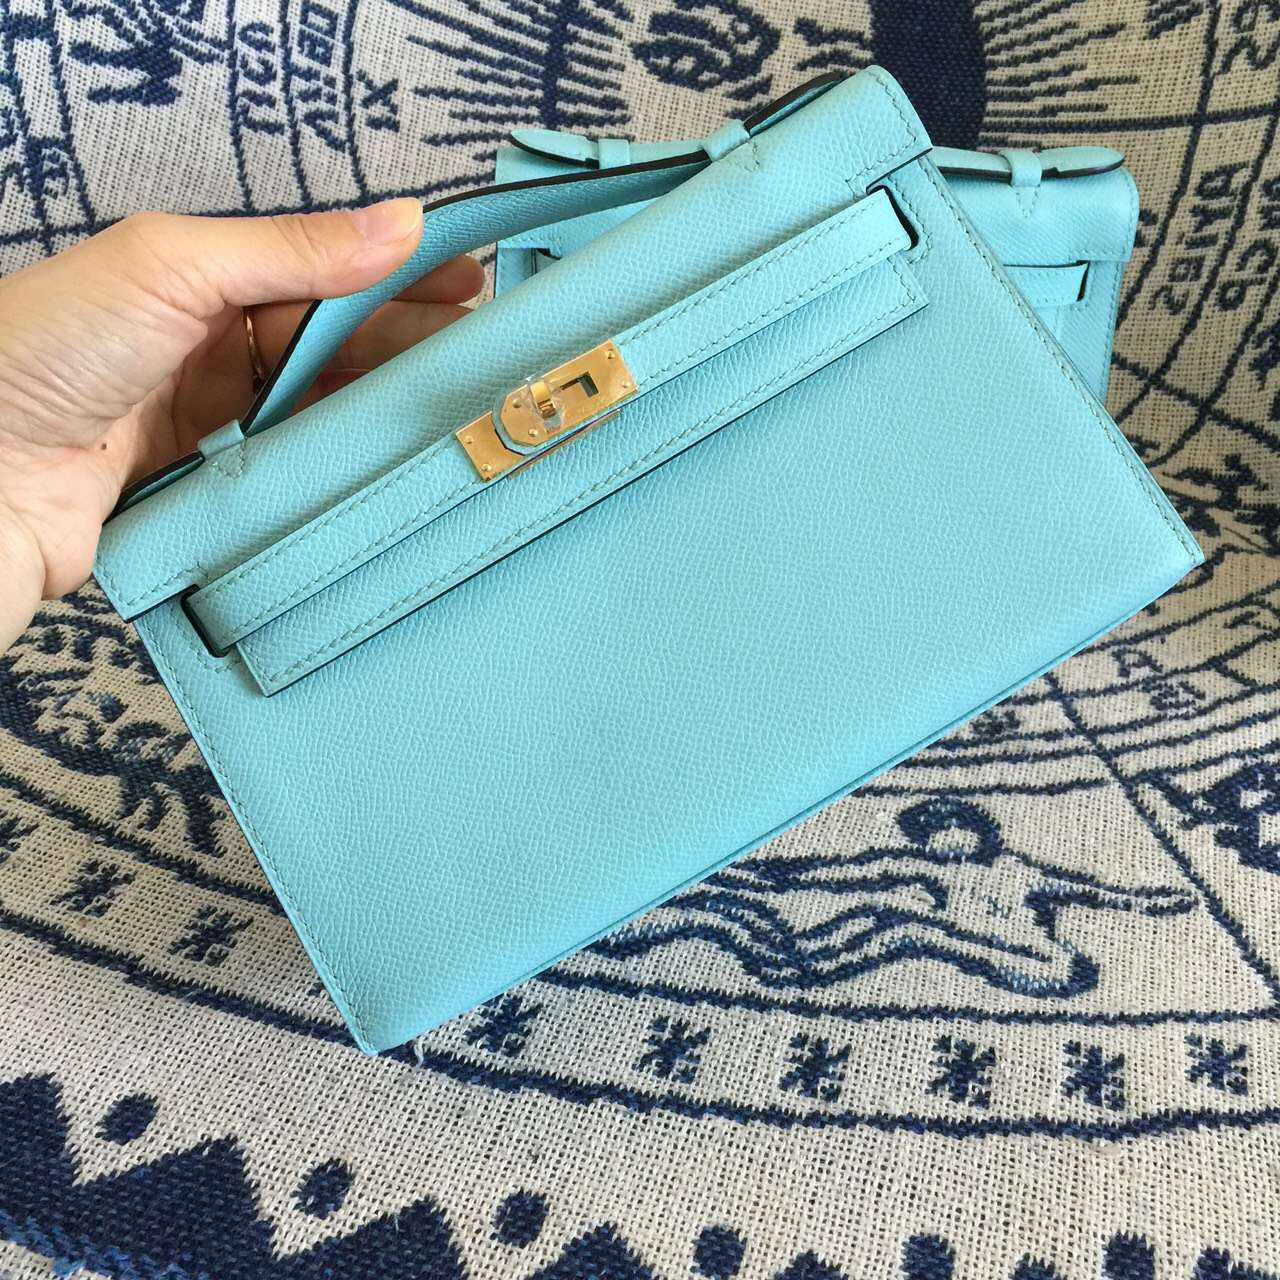 Discount Hermes Epsom Leather MiniKelly Bag in 3P Lagon Blue